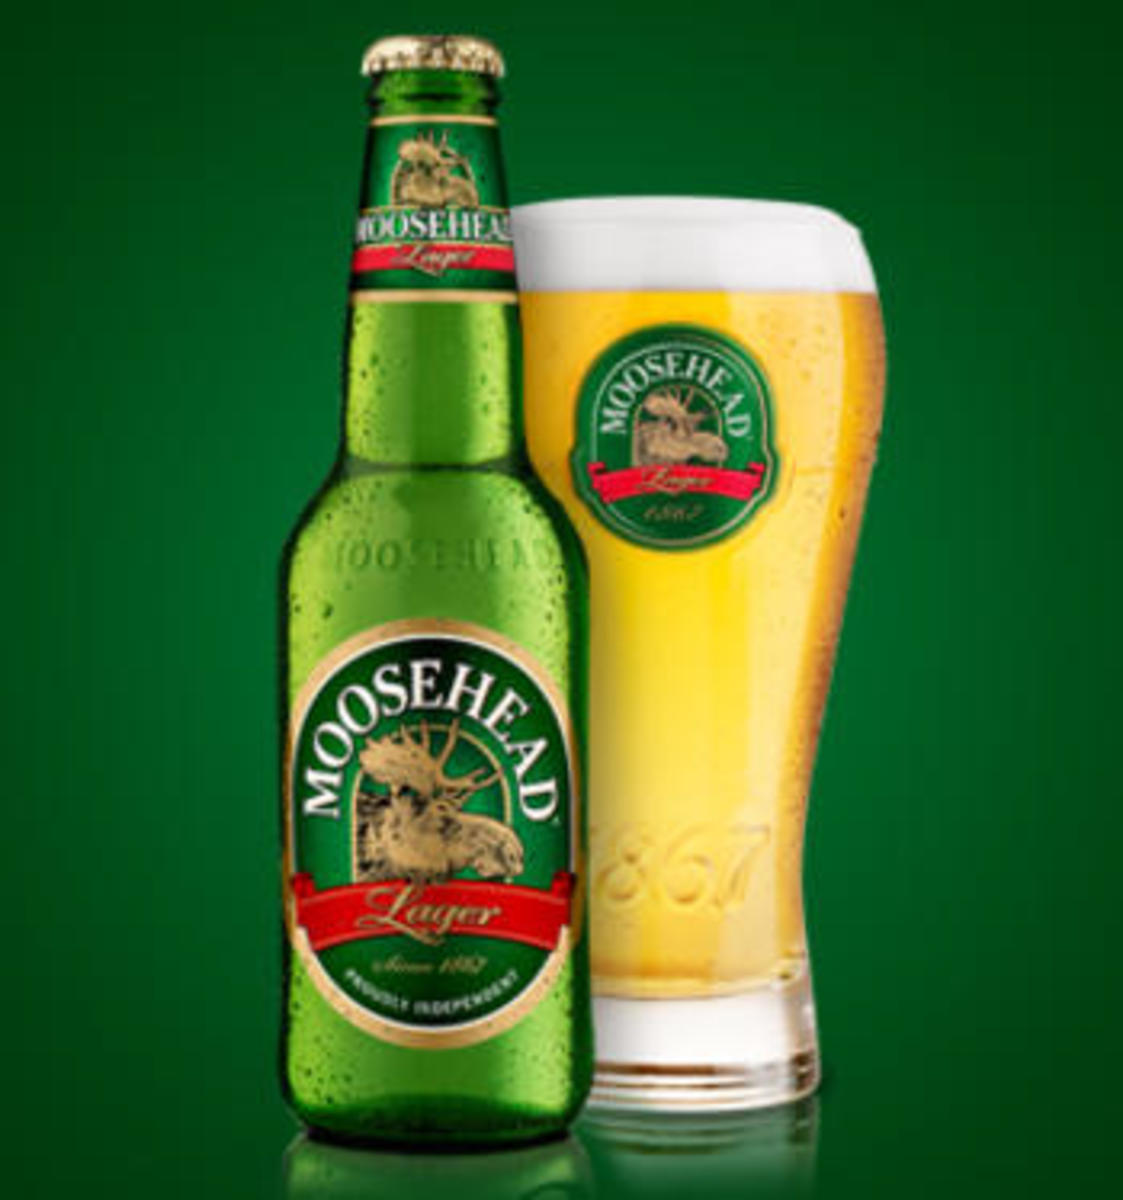 Nothing better on a hot day than a chilled glass of Moosehead Lager